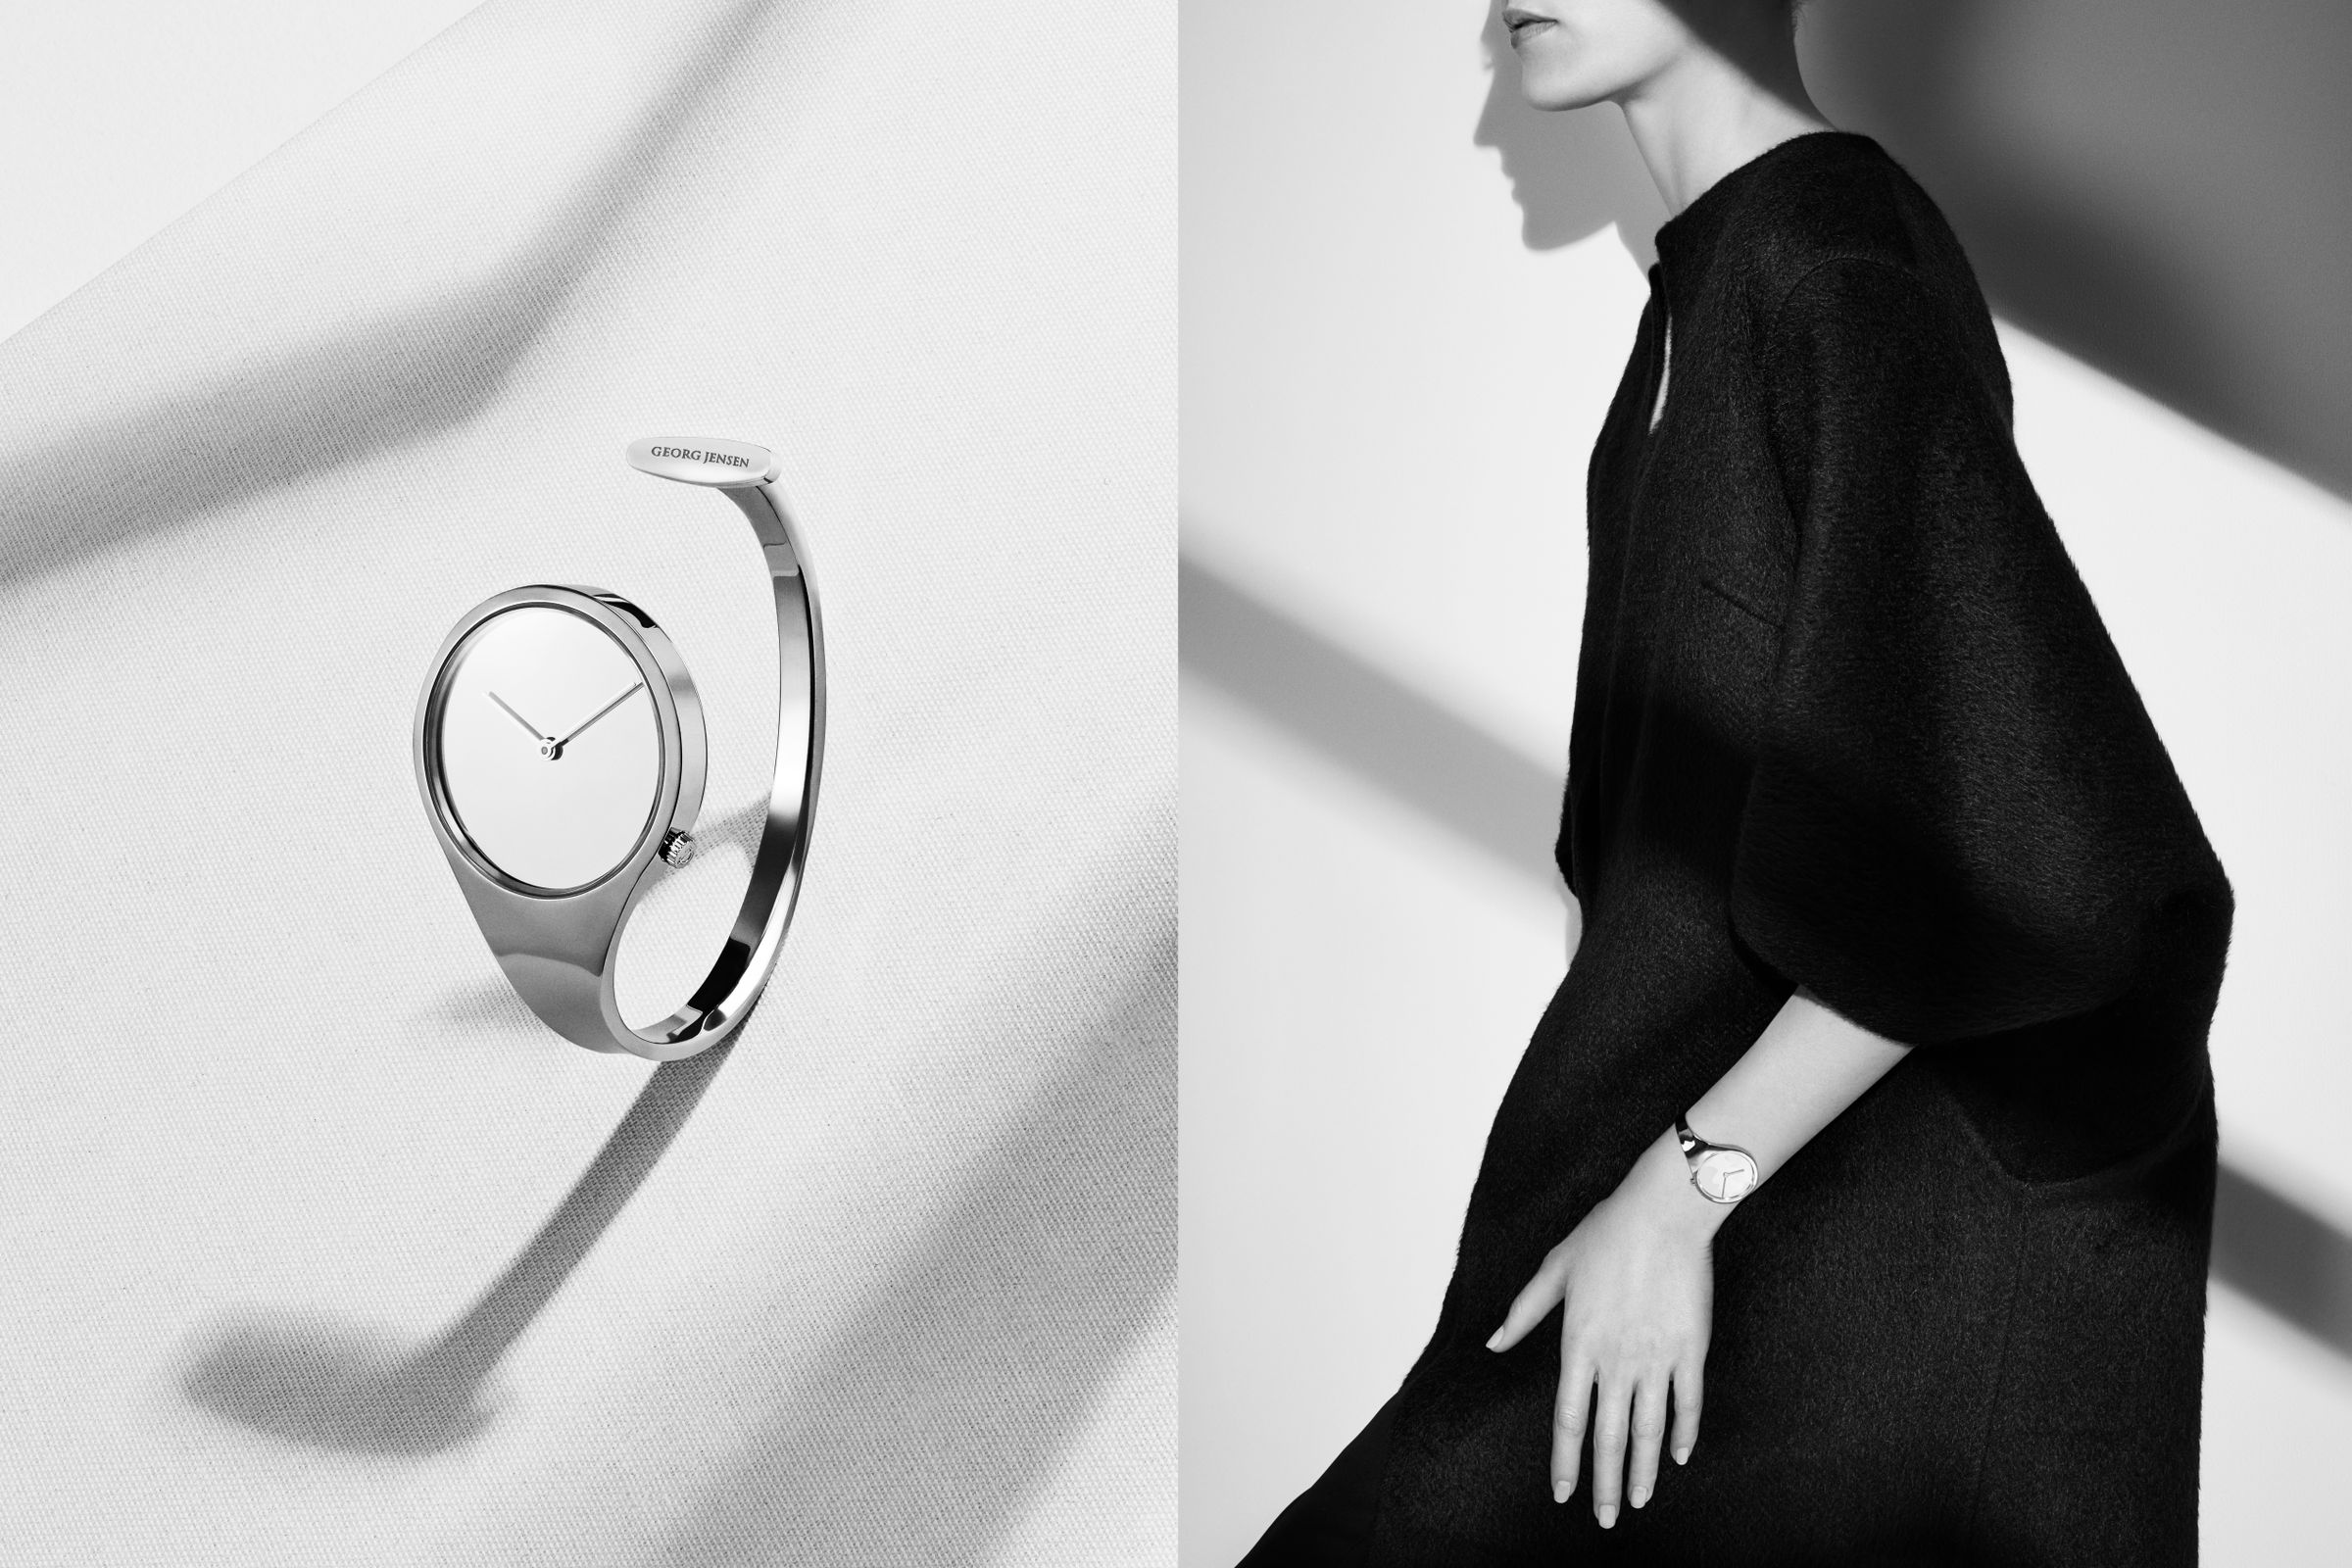 Georg Jensen watches campaign photographed by Hasse Nielsen and Toby McFarlan Pond